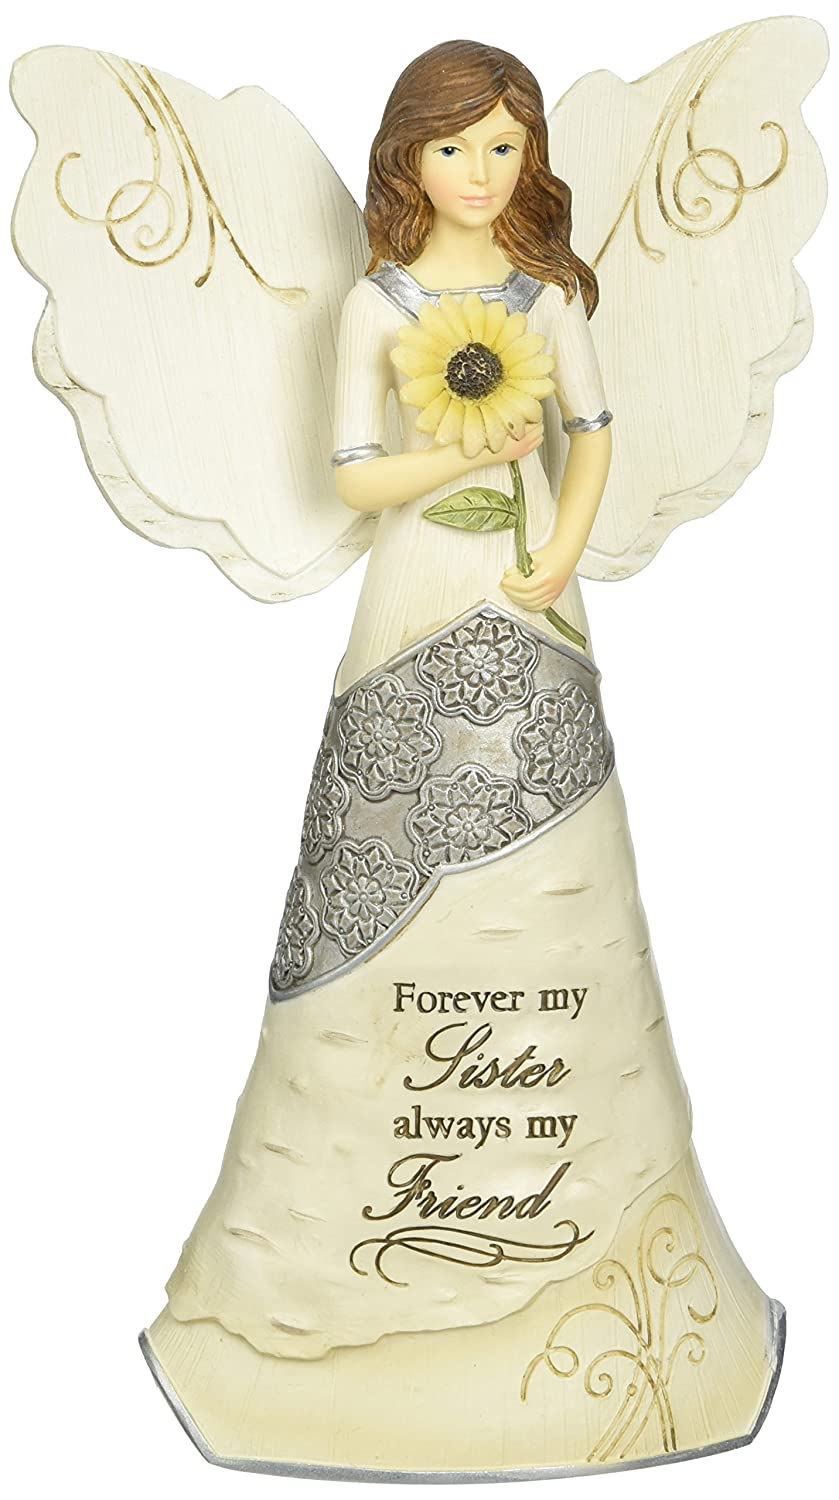 Elements Sister Angel Figurine by Pavilion 6-1/2-Inch Holding Sunflower Inscription Forever My Sister Always My Friend